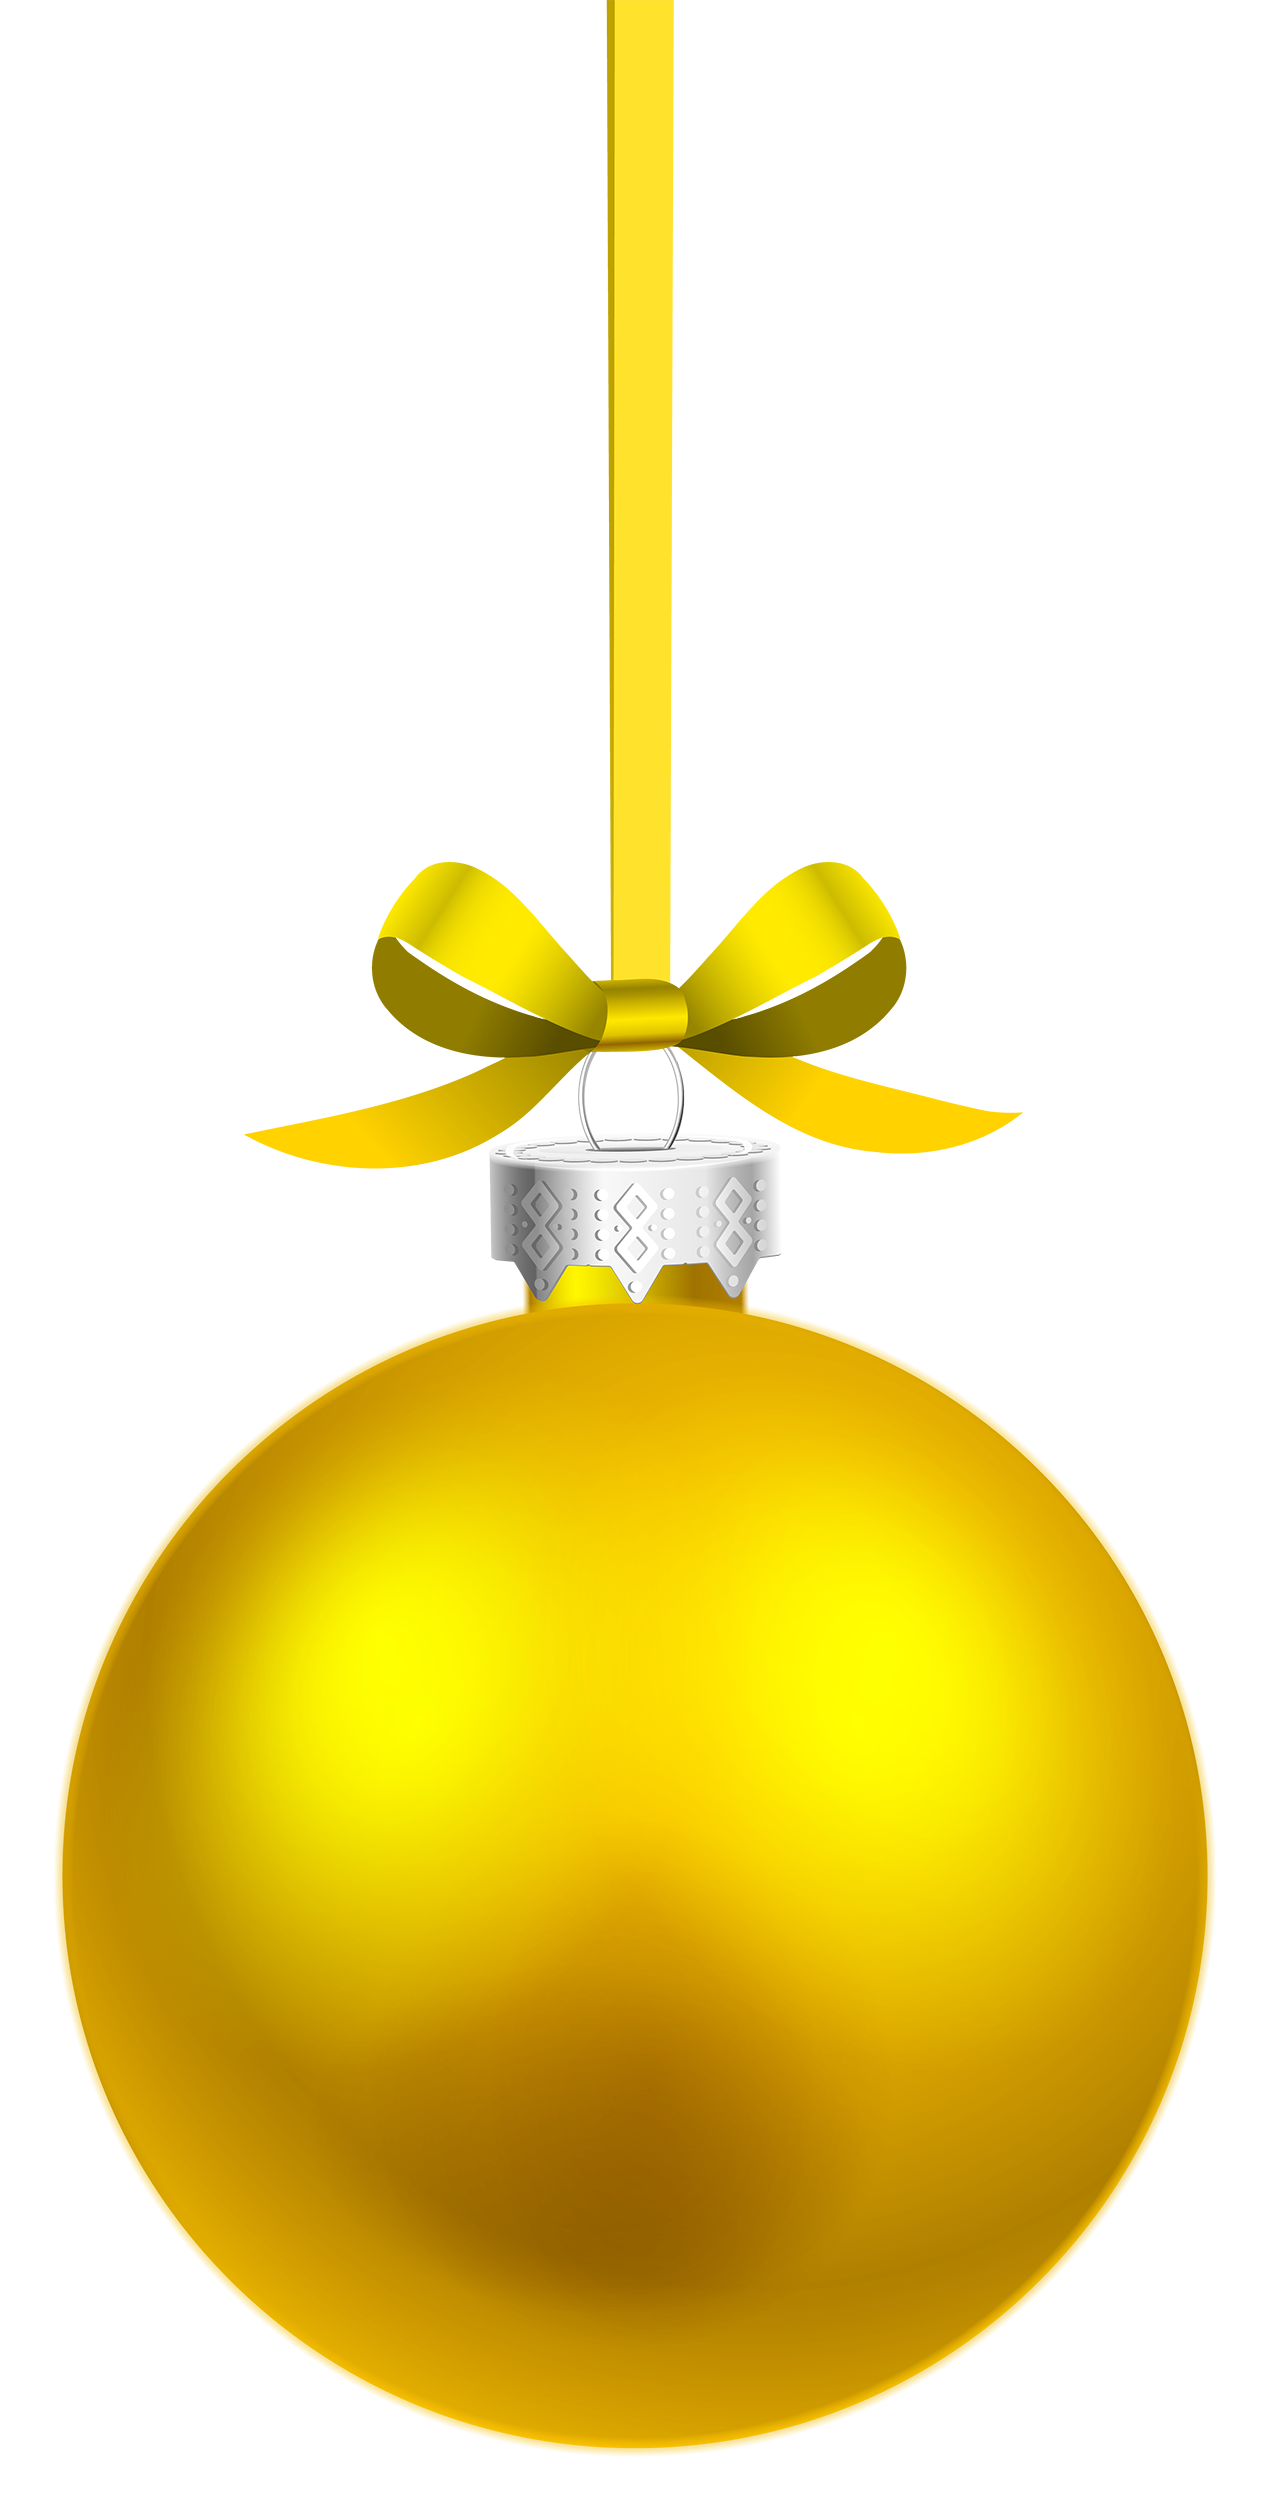 Yellow christmas ornaments png. Pin by myrtle irene